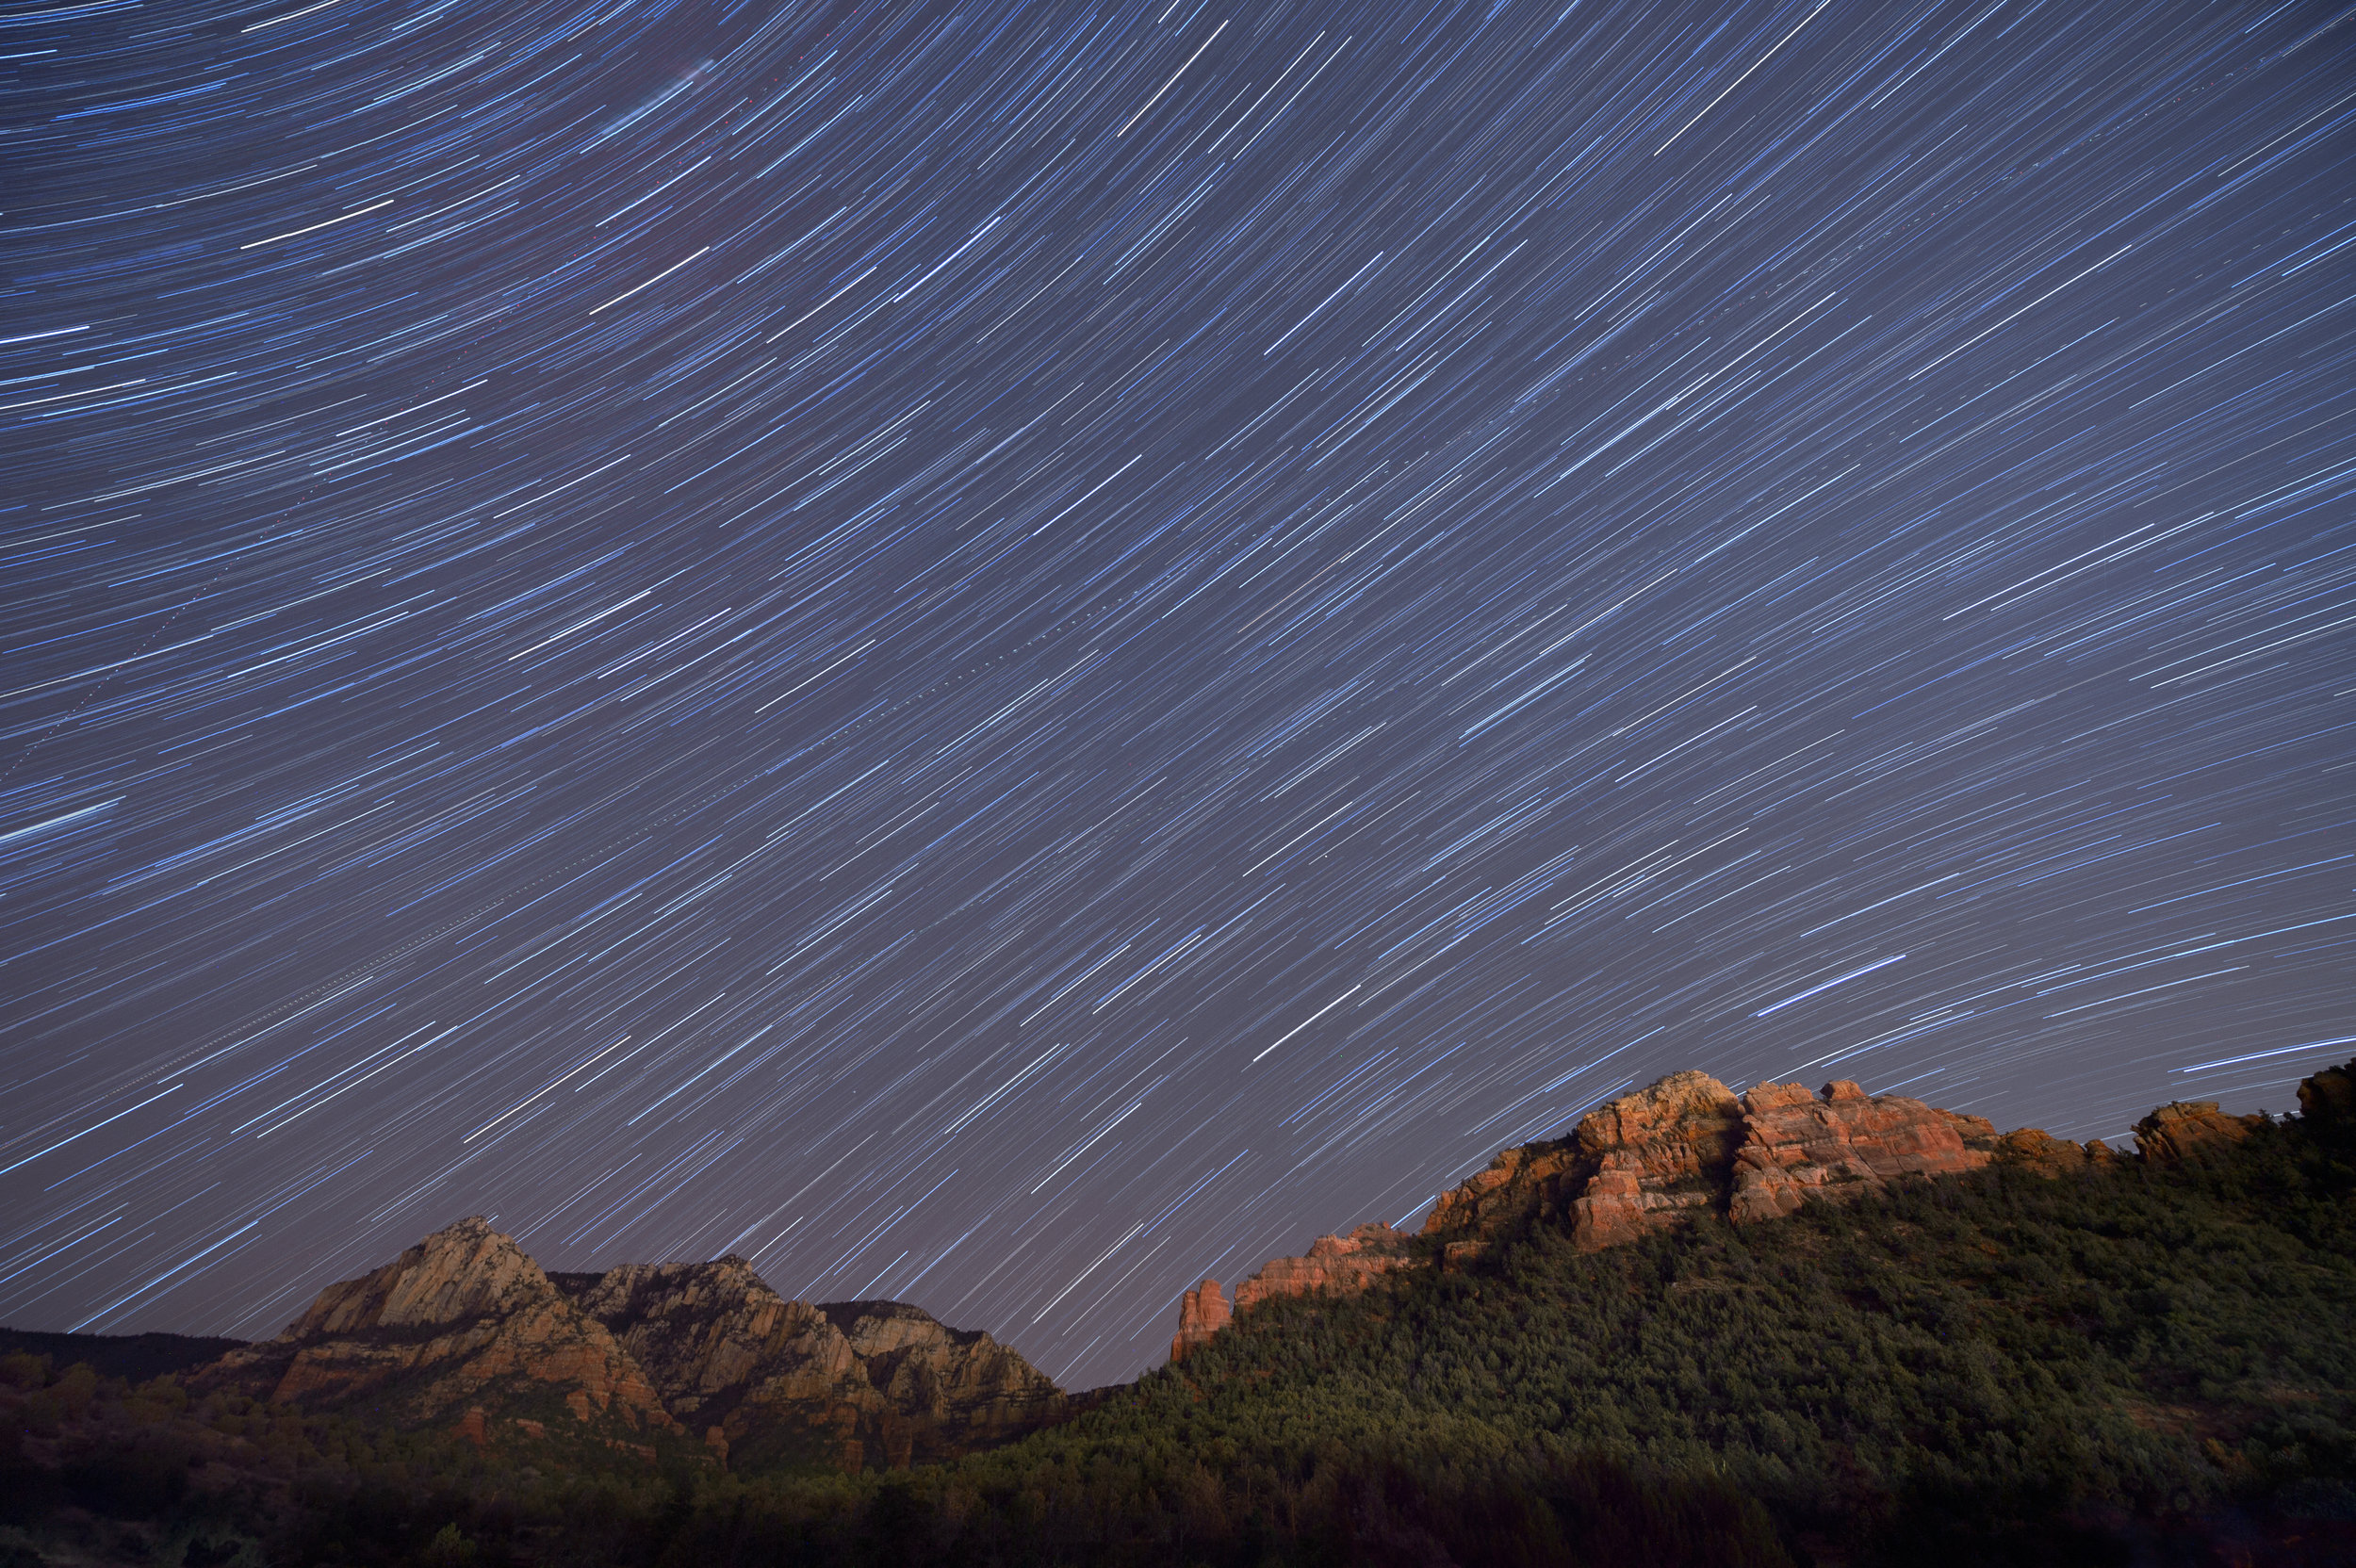 Sotheast view in Sedona, Arizona. Nikon D4s, 14-24mm f/2.8 lens. 4 minutes, f/4, ISO 200. Photo © Tim Cooper.